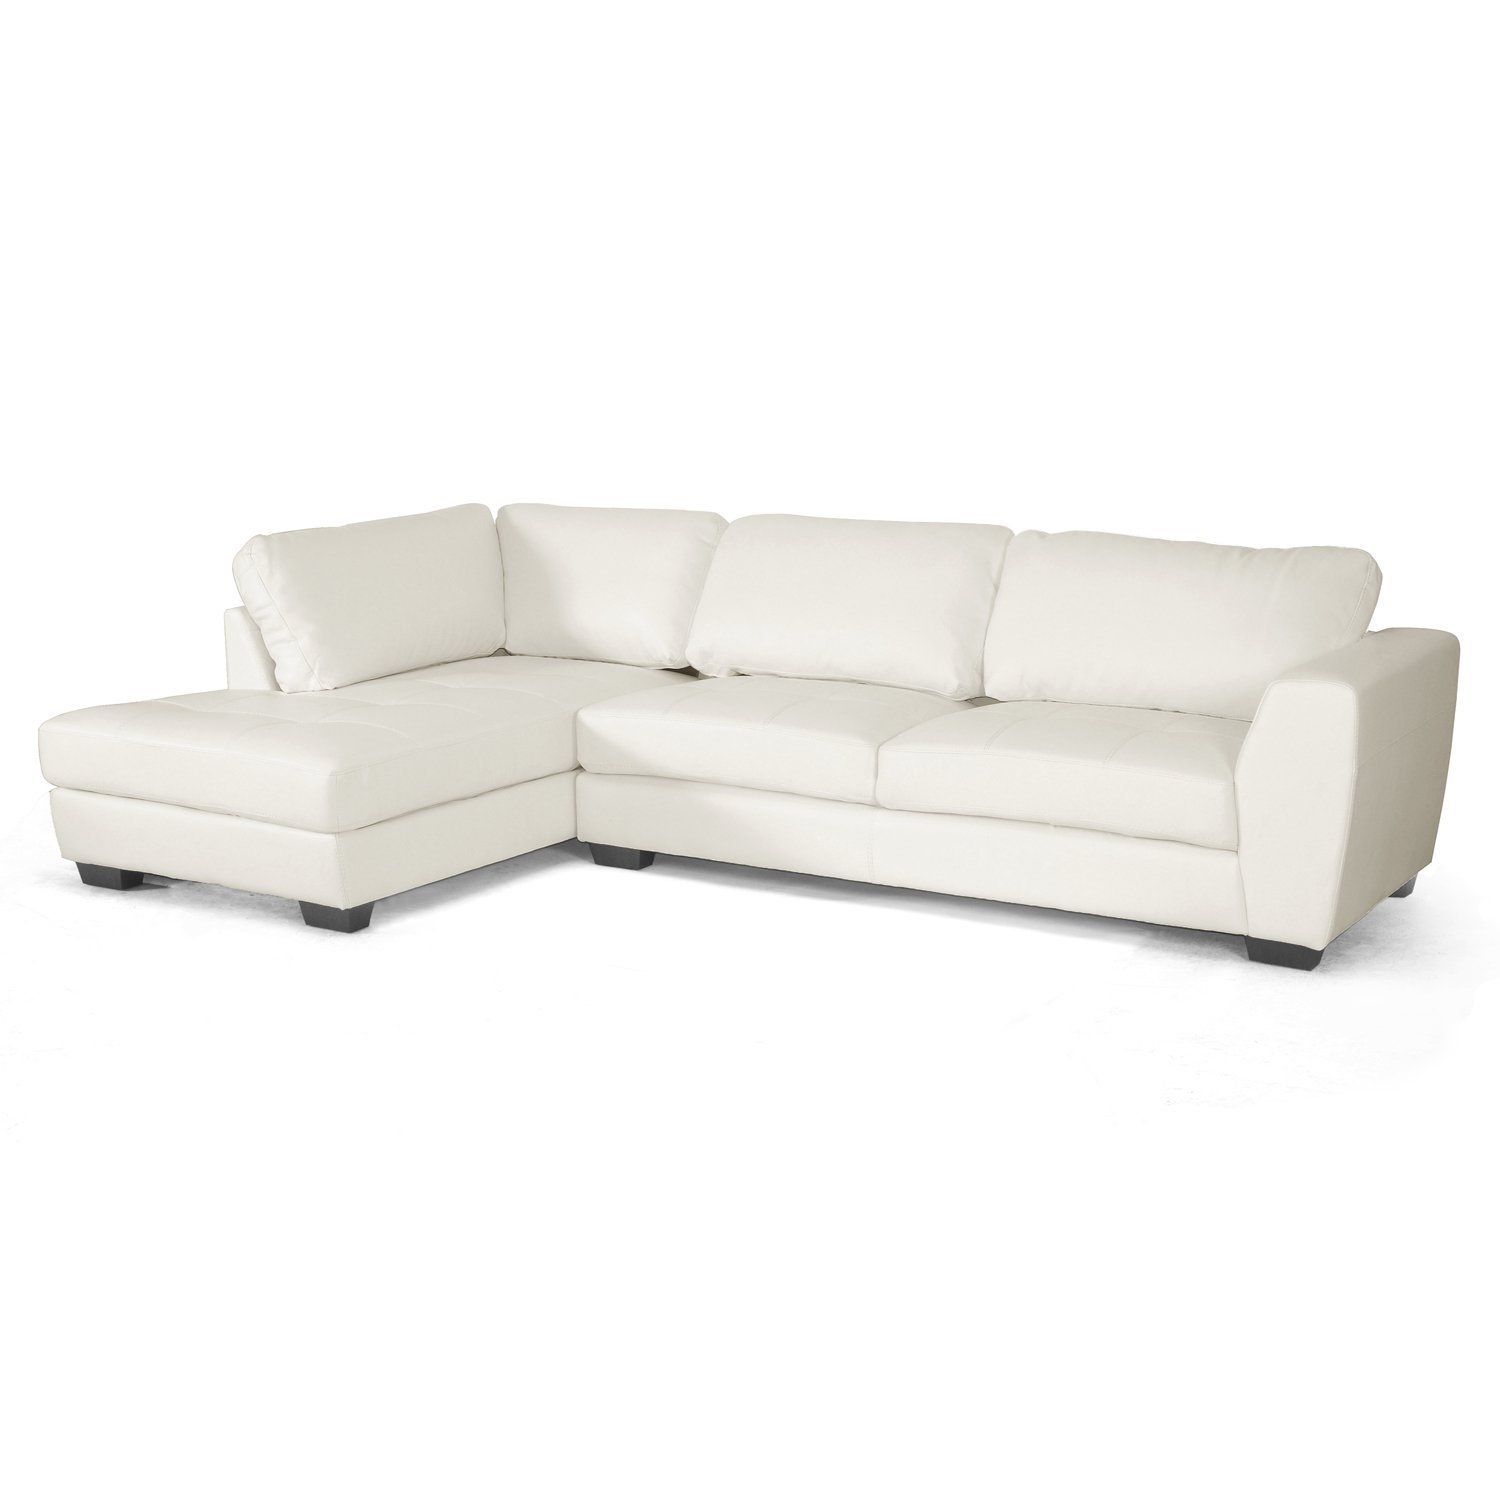 white sectional sofa with chaise home furniture design. Black Bedroom Furniture Sets. Home Design Ideas